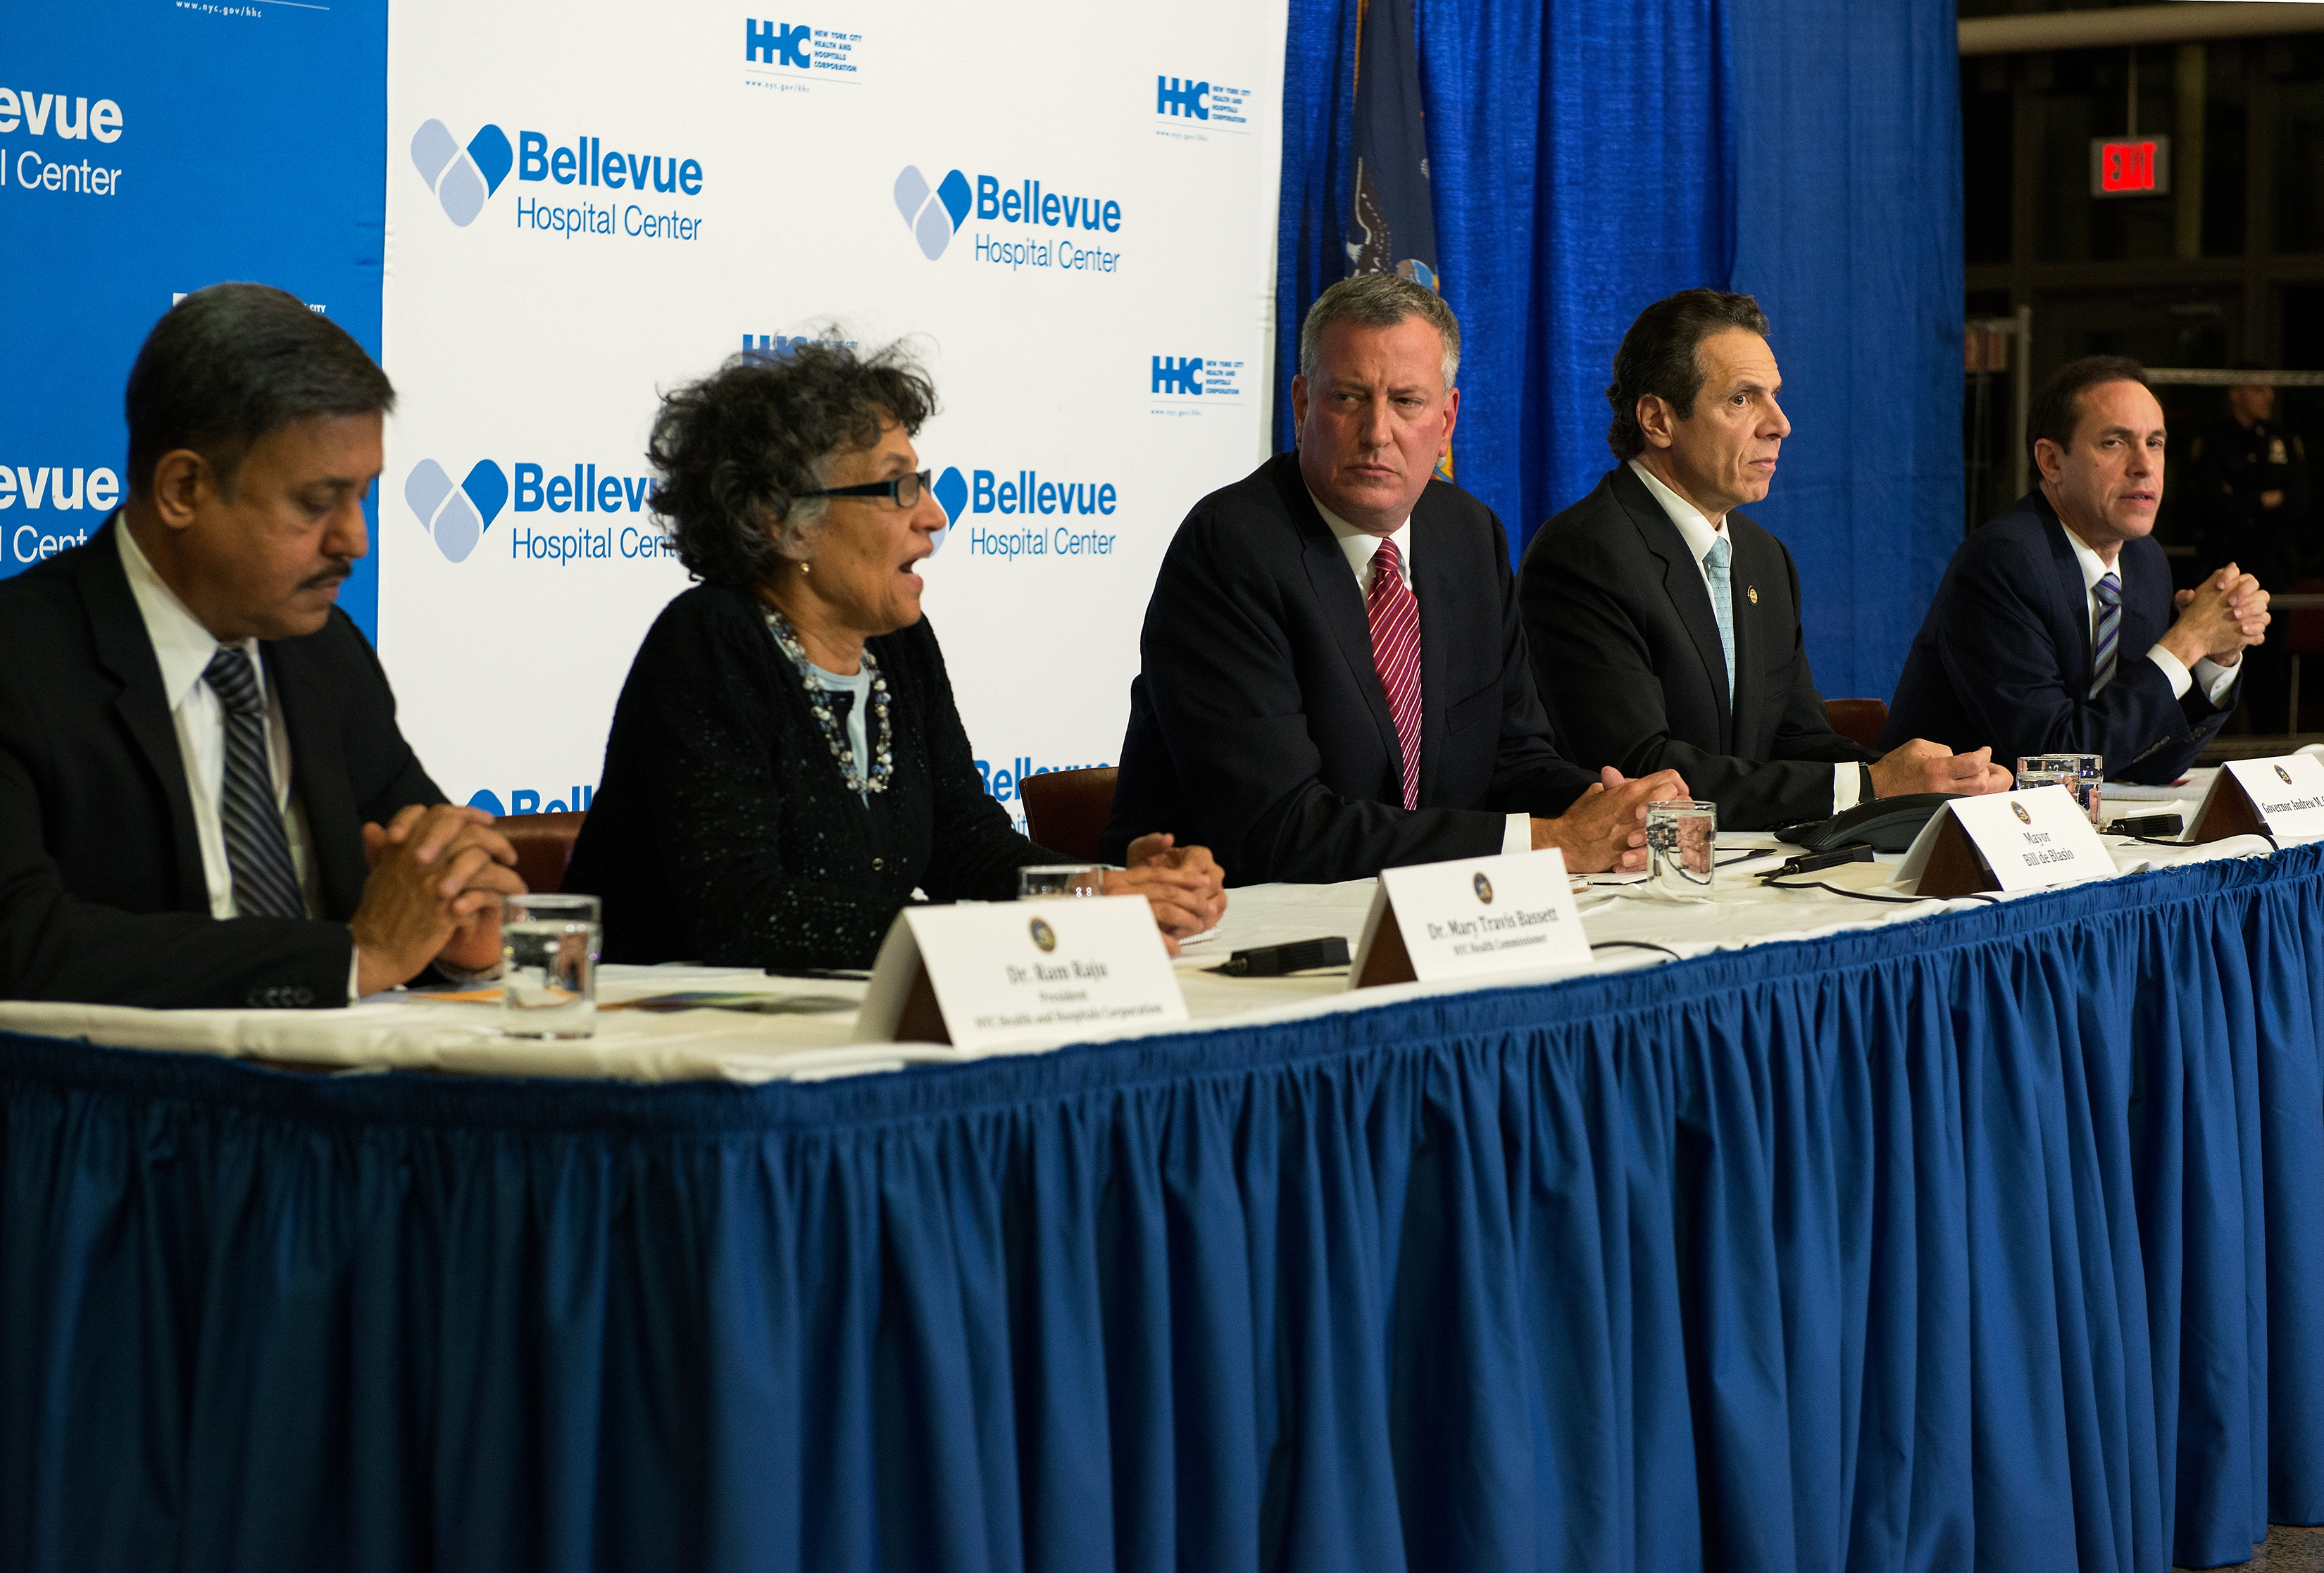 NEW YORK, NY - OCTOBER 23: (L-R) President of NYC Health and Hospitals Corporation Dr. Ram Raju, NYC Health Commissioner Dr. Mary Travis Bassett, Mayor Bill DeBlasio of New York City, Governor Andrew Cuomo of New York and Acting Commissioner of the Department of Health Dr. Howard Zucker speak at a press conference October 23, 2014 in New York City. The conference addressed Dr. Craig Spencer, who had returned to New York City from Guinea where he was working with Doctors Without Borders treating Ebola patients. Spencer had been quarantined after showing symptoms consistent with the virus and was taken to Bellevue hospital to undergo testing. According to reports, test results have confirmed that Spencer has contracted the Ebola virus. (Photo by Bryan Thomas/Getty Images)